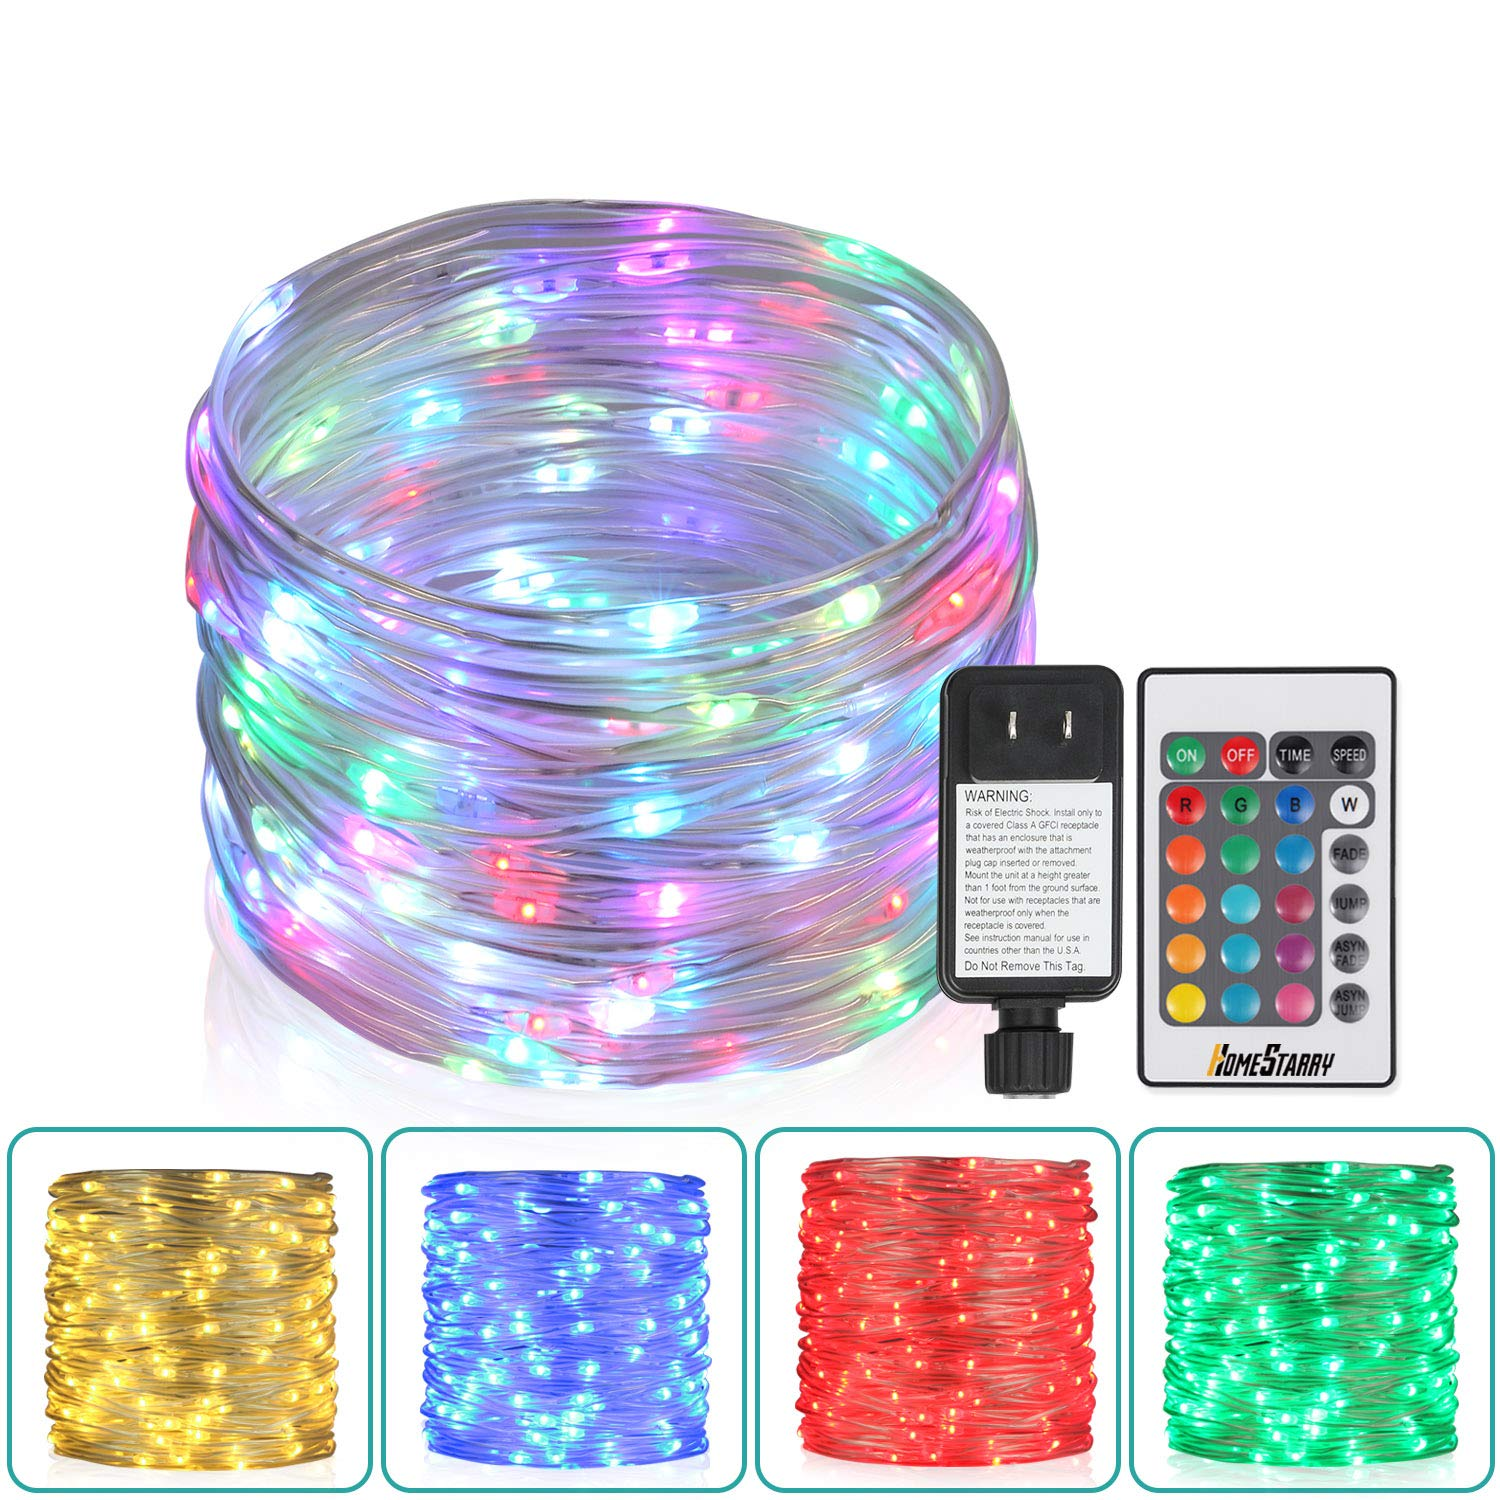 33Ft Outdoor Rope Lights, 100 LEDs Plug-in Color Changing Lights with Remote Waterproof String Lights Fairy Lights for Outdoor, Wedding, Party, Garden, Home Decor, 16 Colors Option